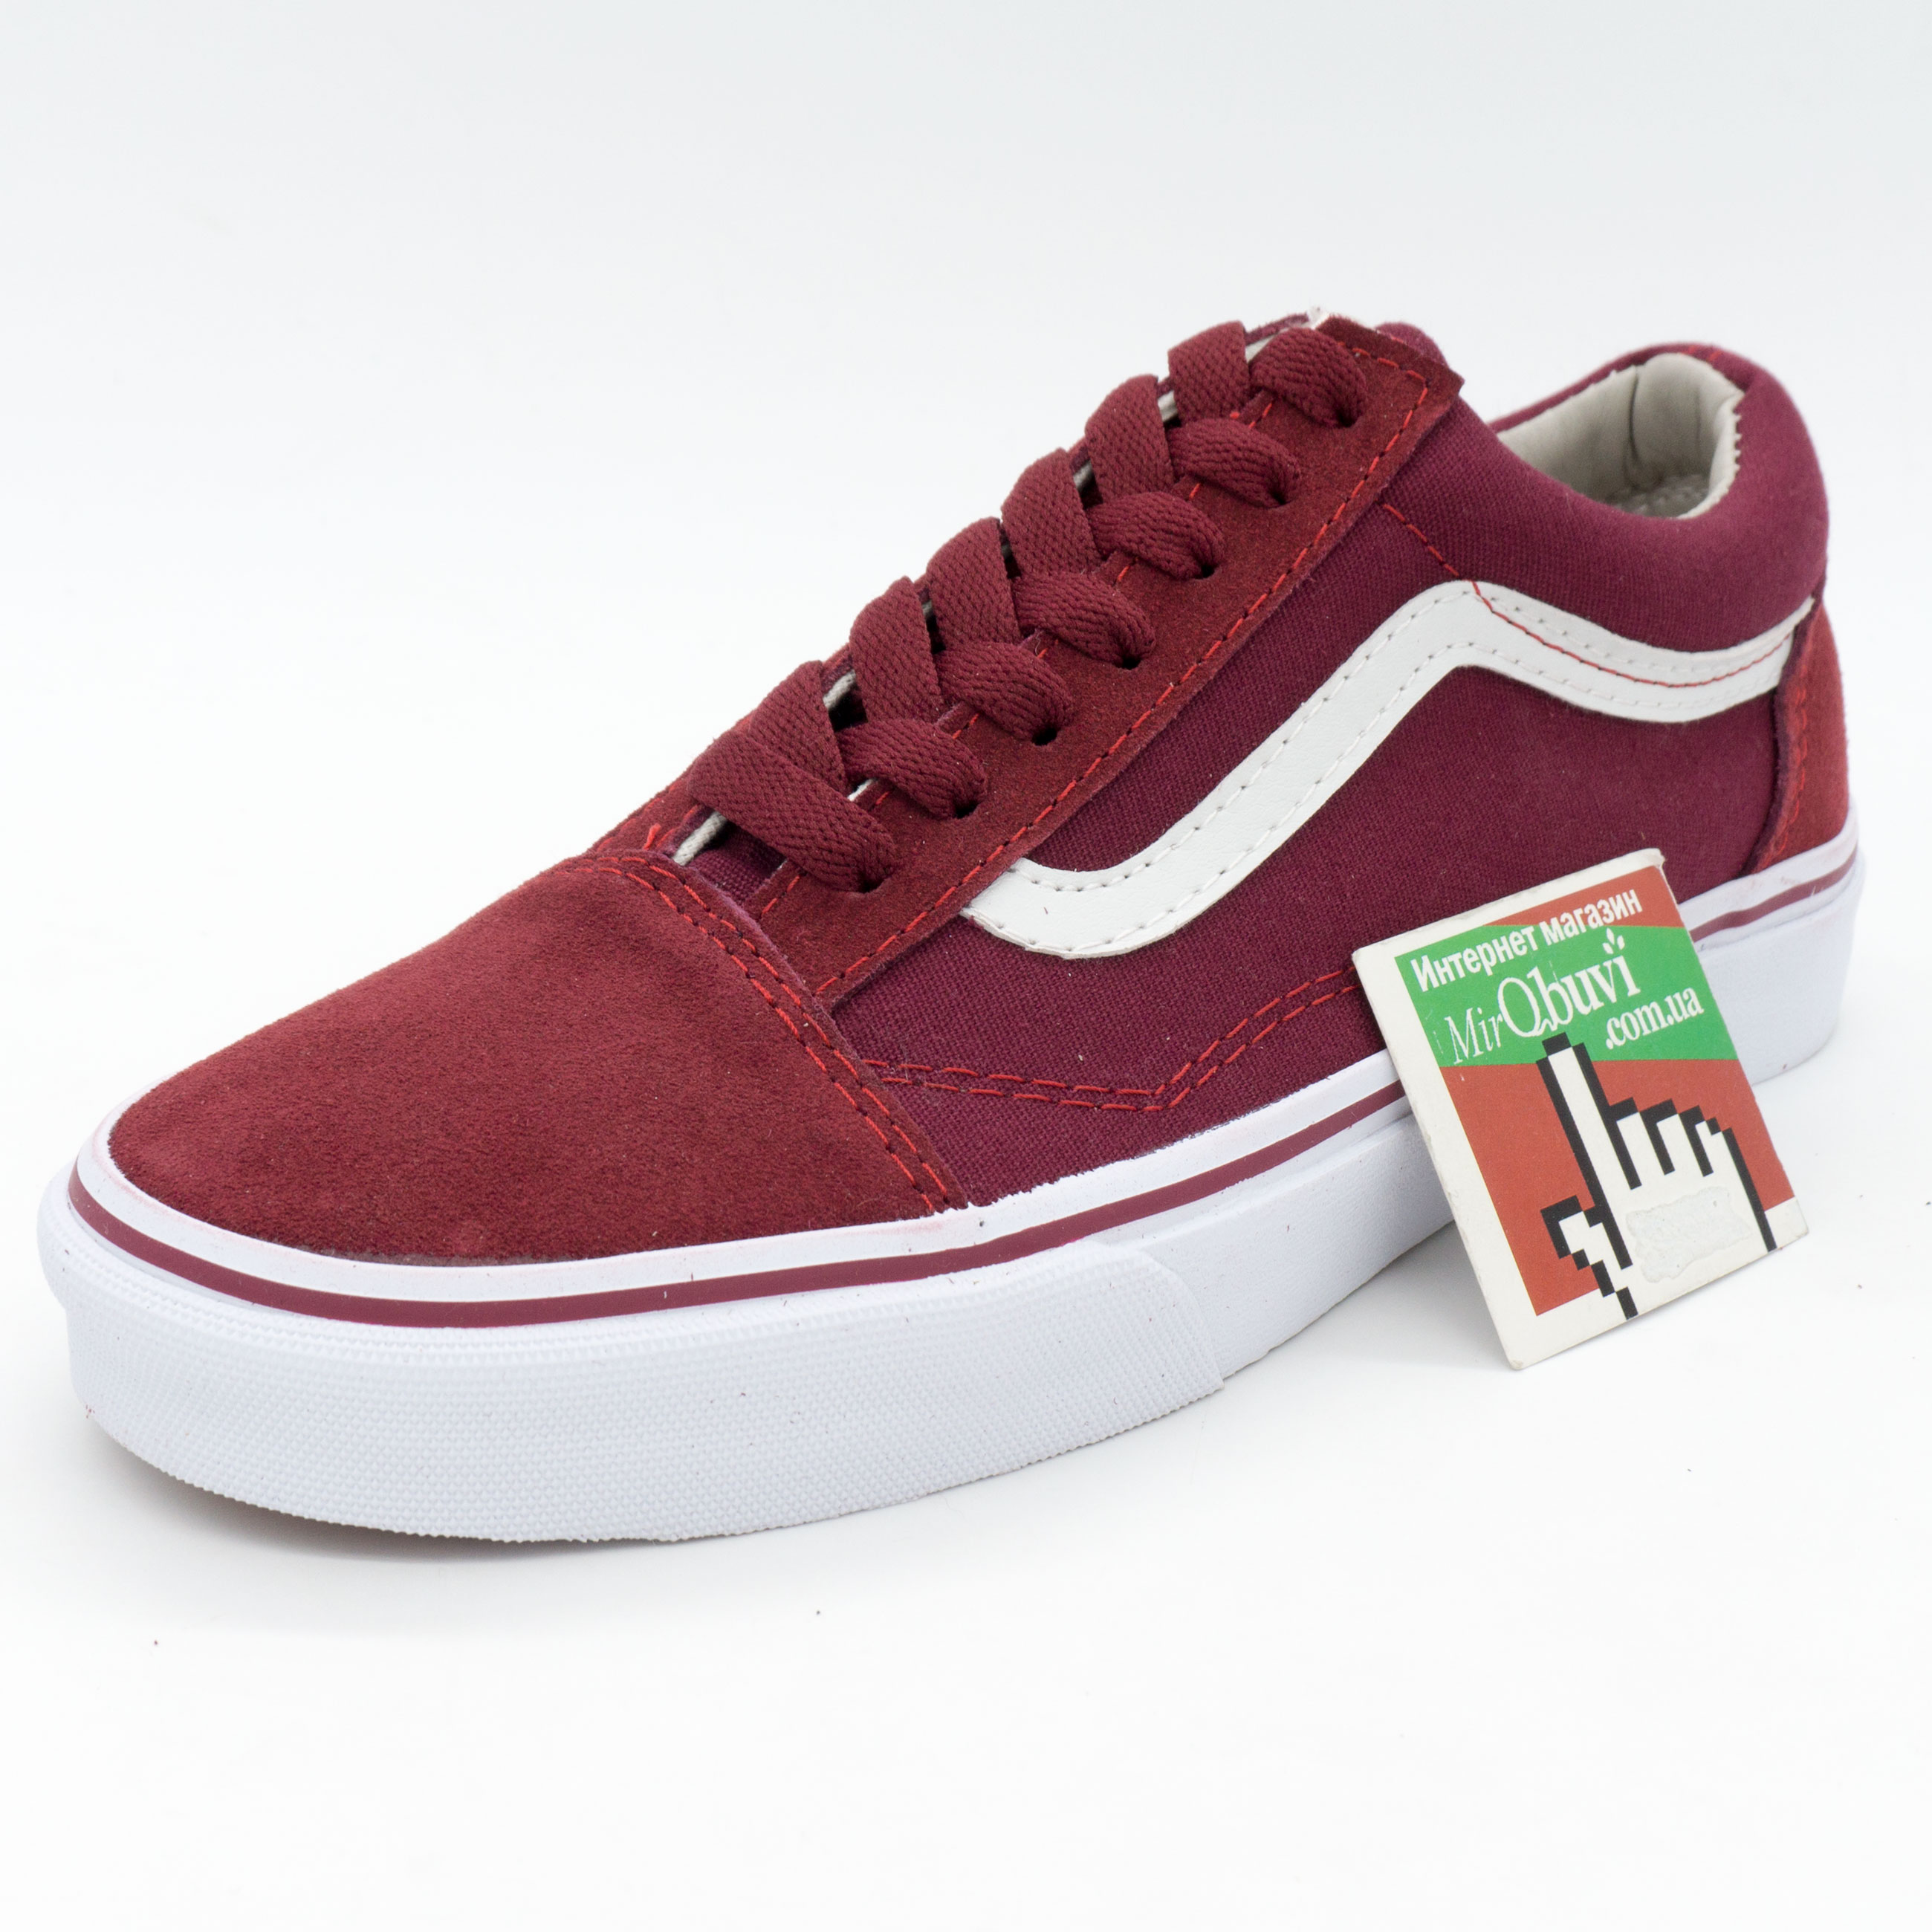 ... фото front Vans old skool Венс олд скул бордовые 2ff081c79986f